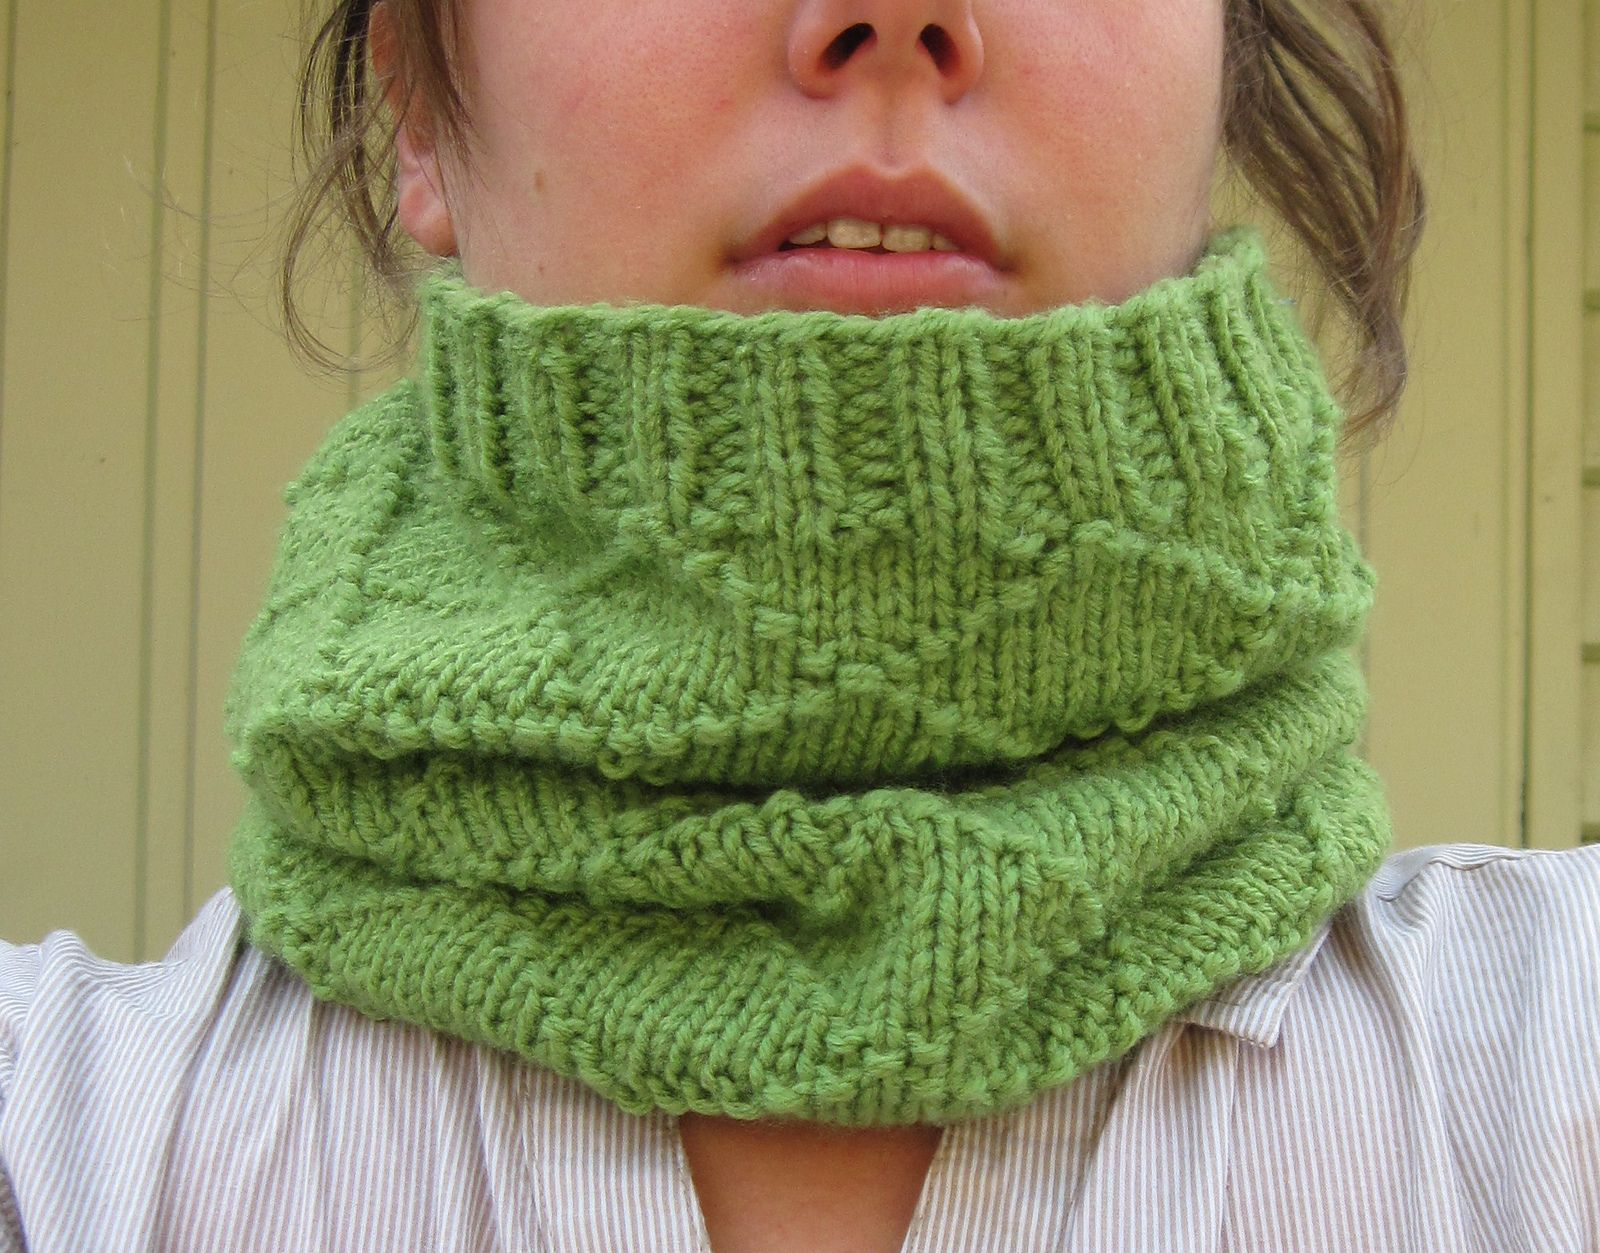 Ravelry: Criss Cross Snood by Boomie | tricot | Pinterest